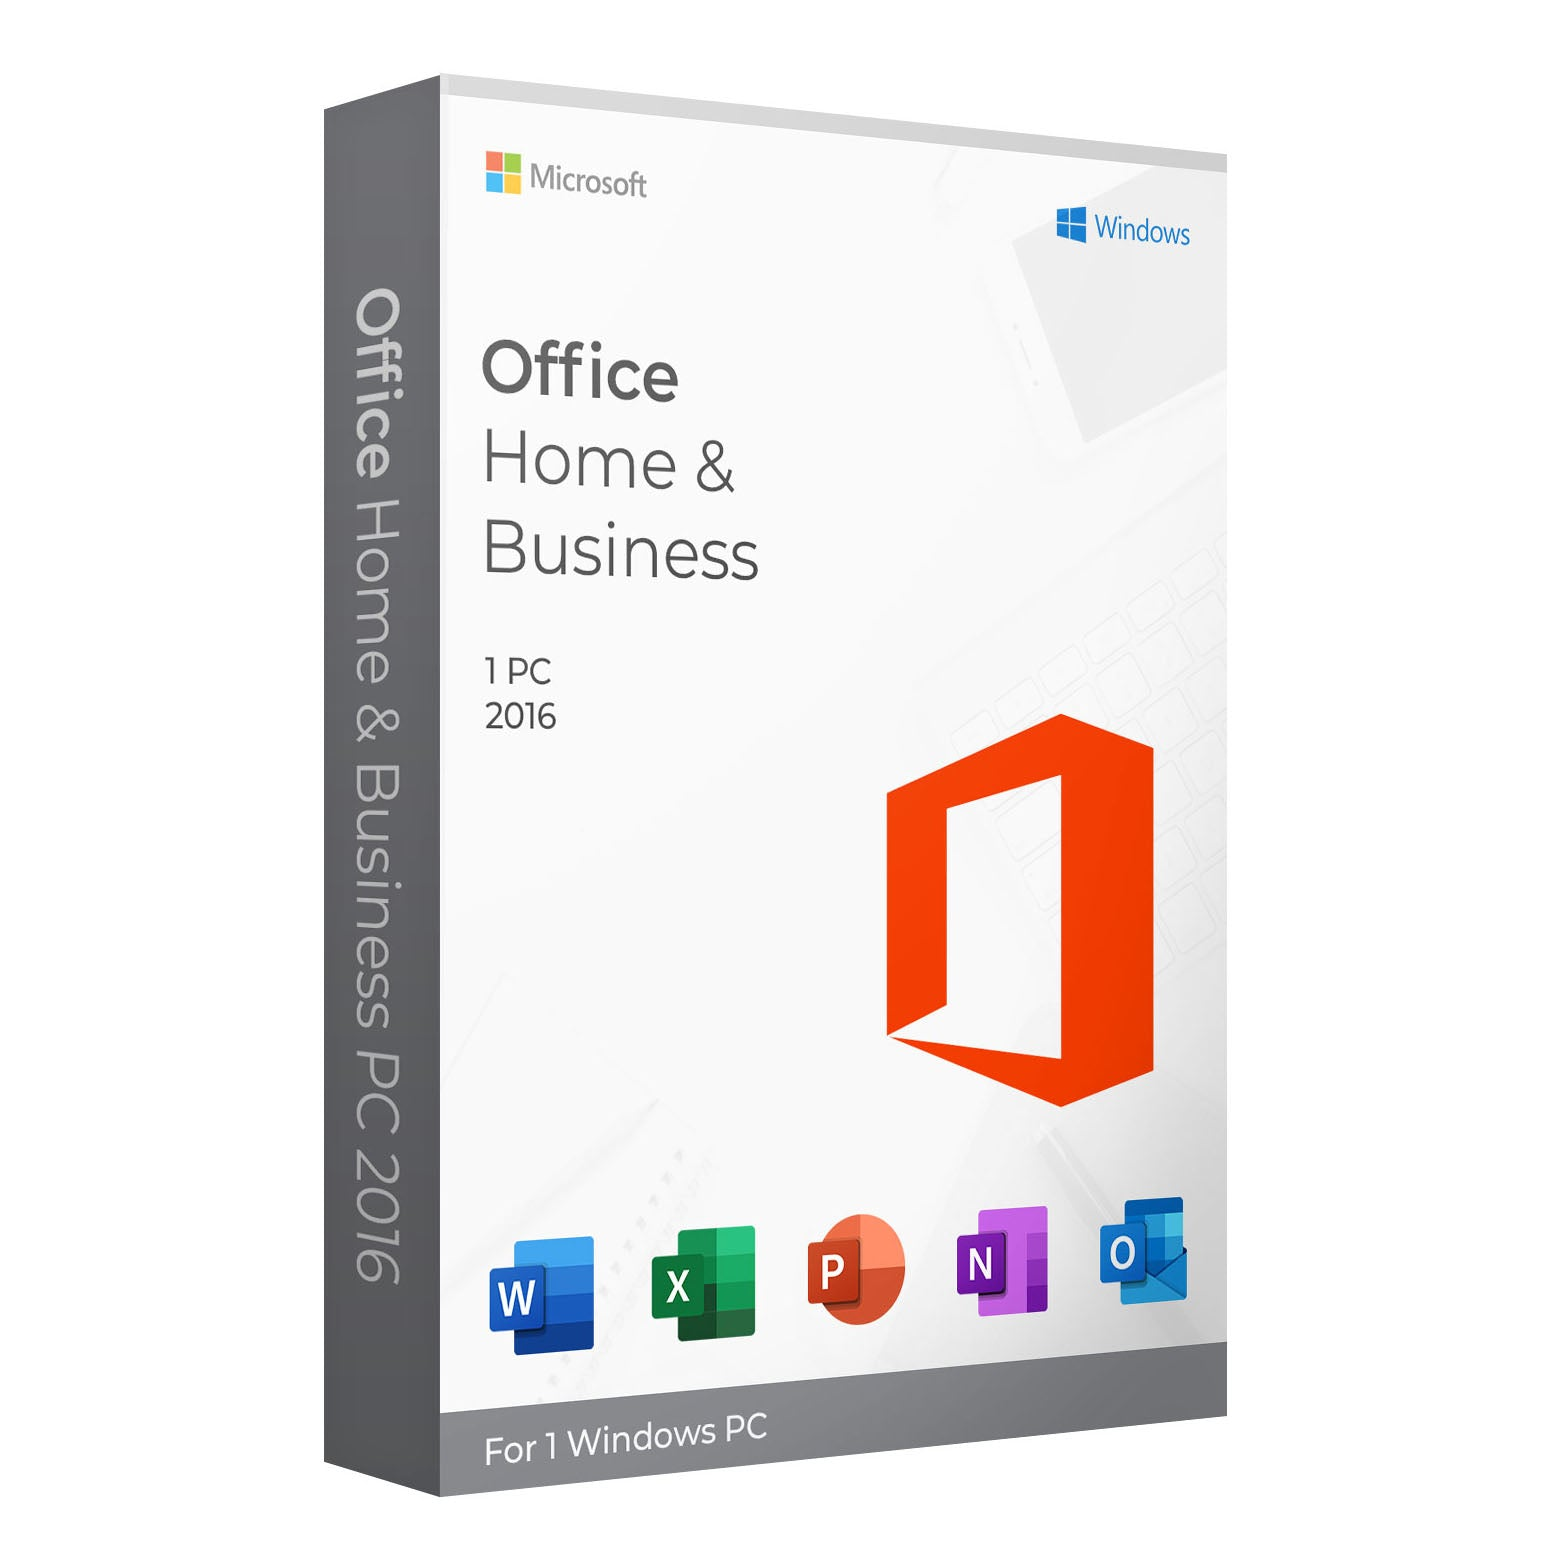 Office 2016 Home & Business for Windows PC